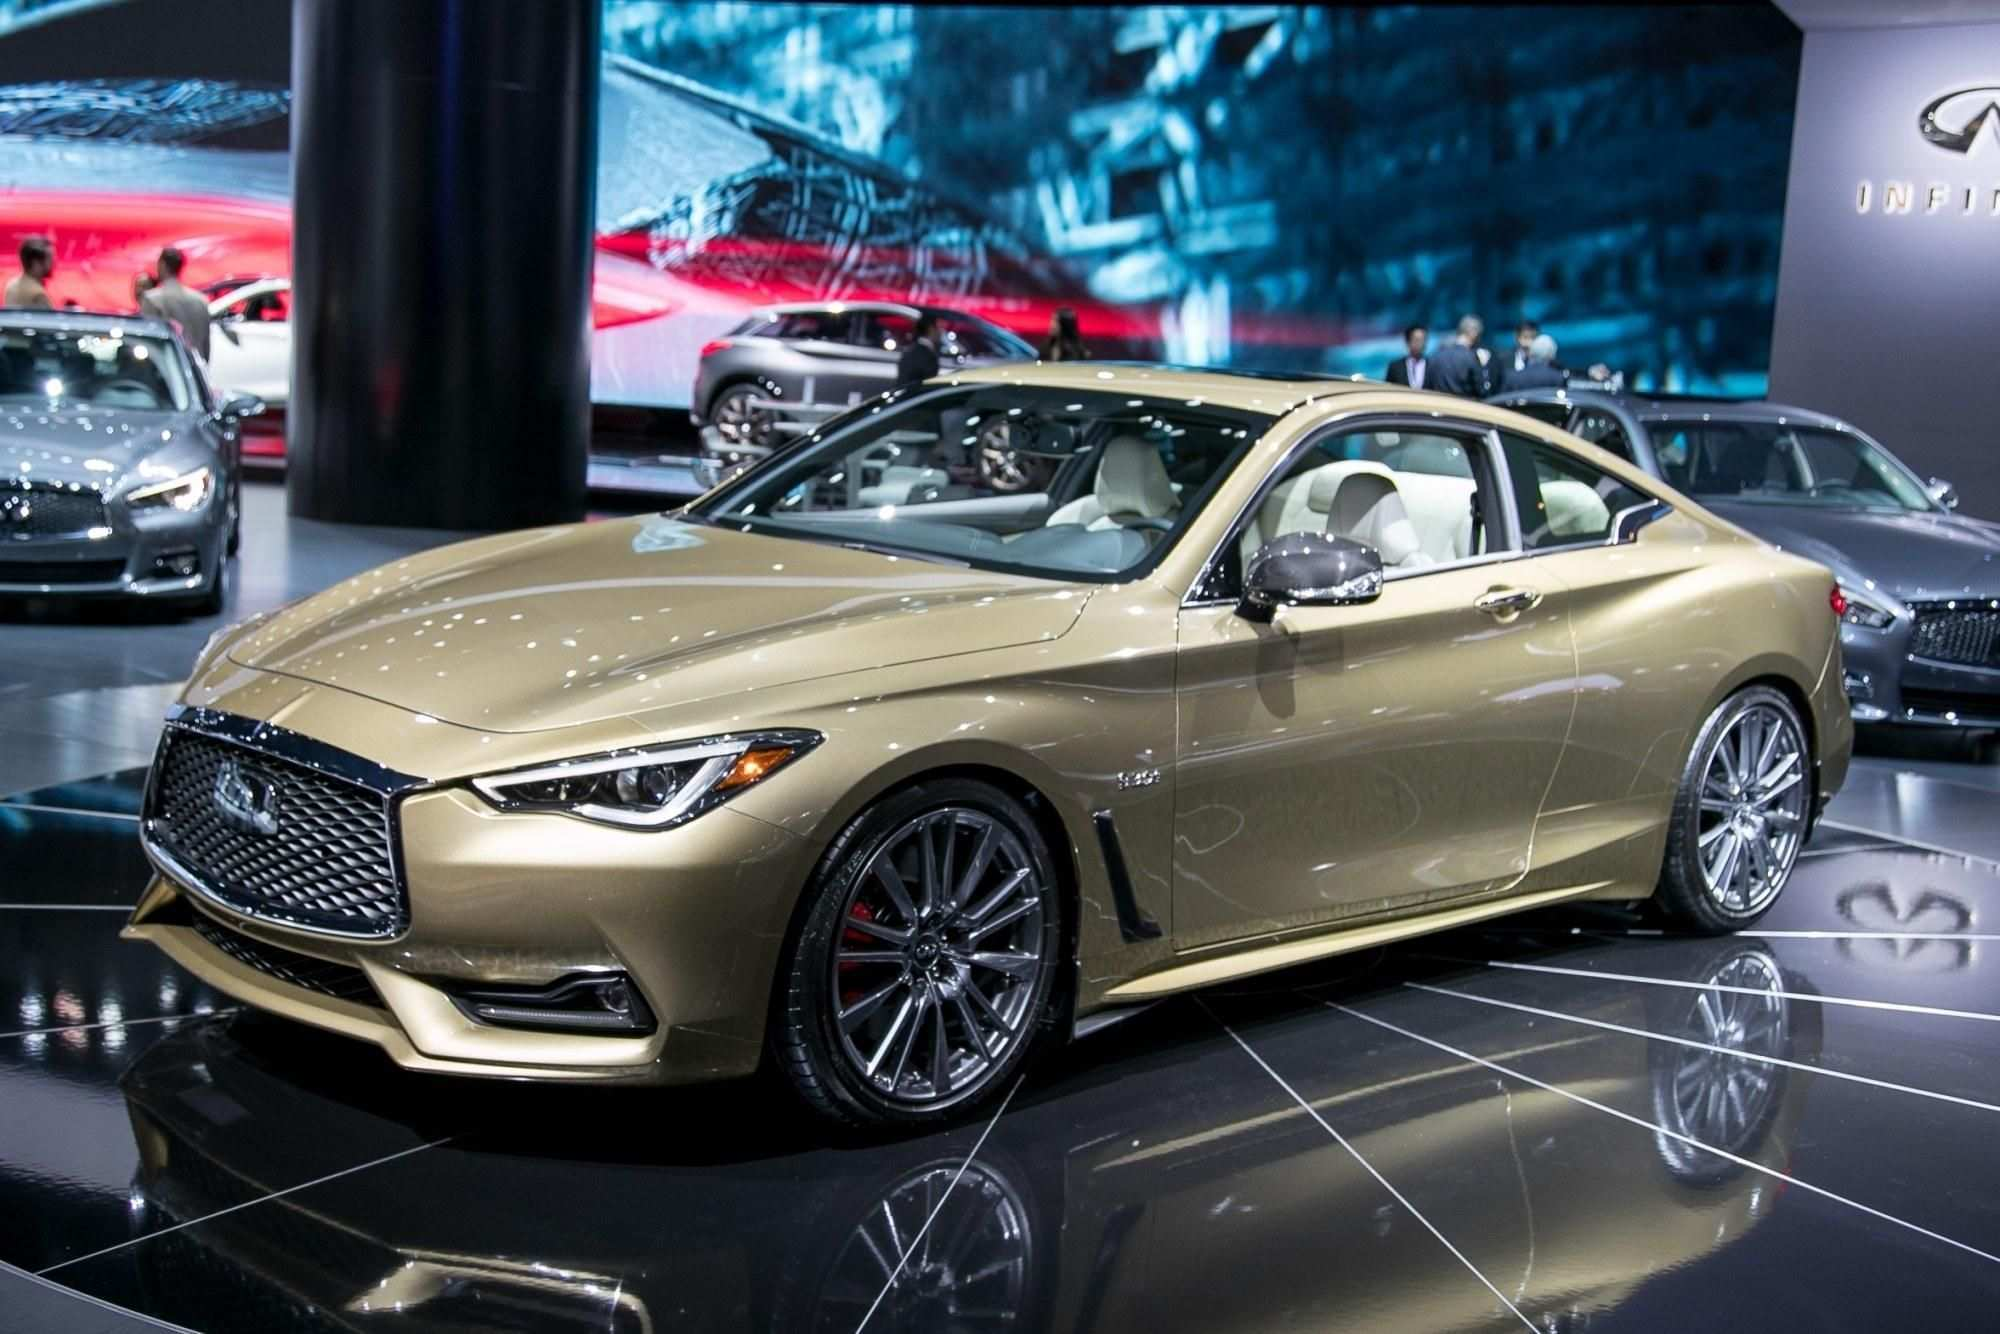 27 All New 2019 Infiniti Q60s Release Date And Concept